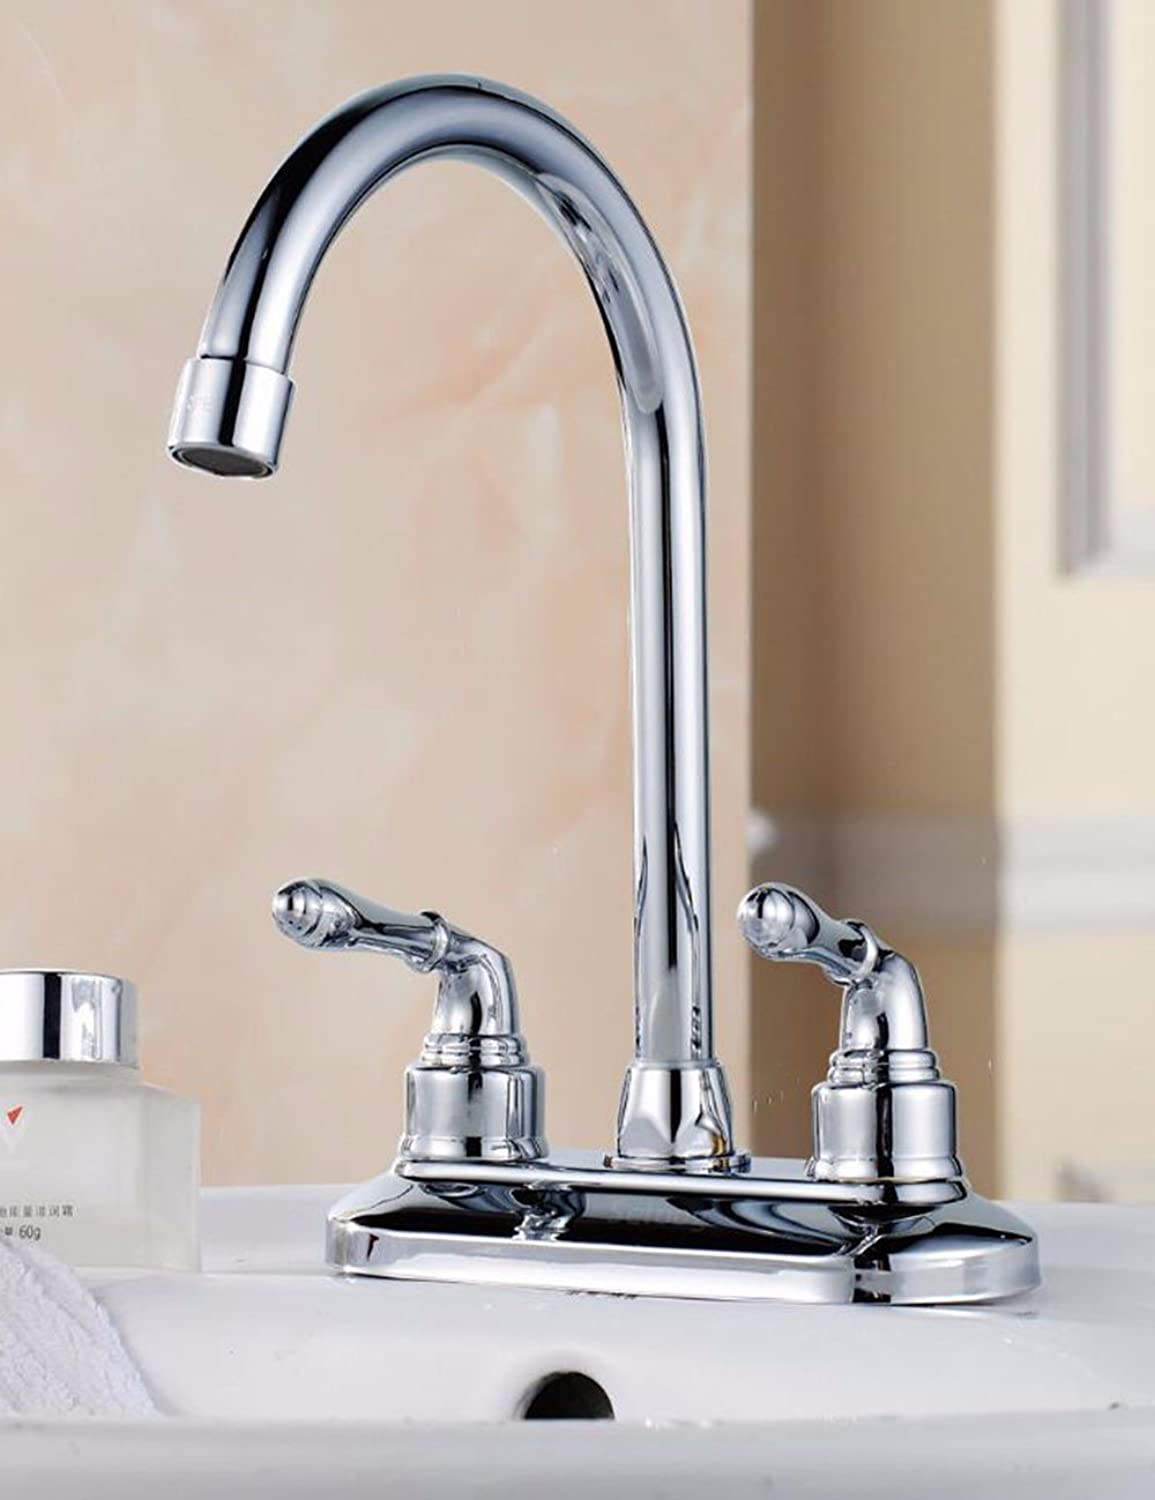 Hlluya Professional Sink Mixer Tap Kitchen Faucet Wash Basin Washbasin Faucet, double-double on high bend basin faucet, heating and cooling can redate the faucet